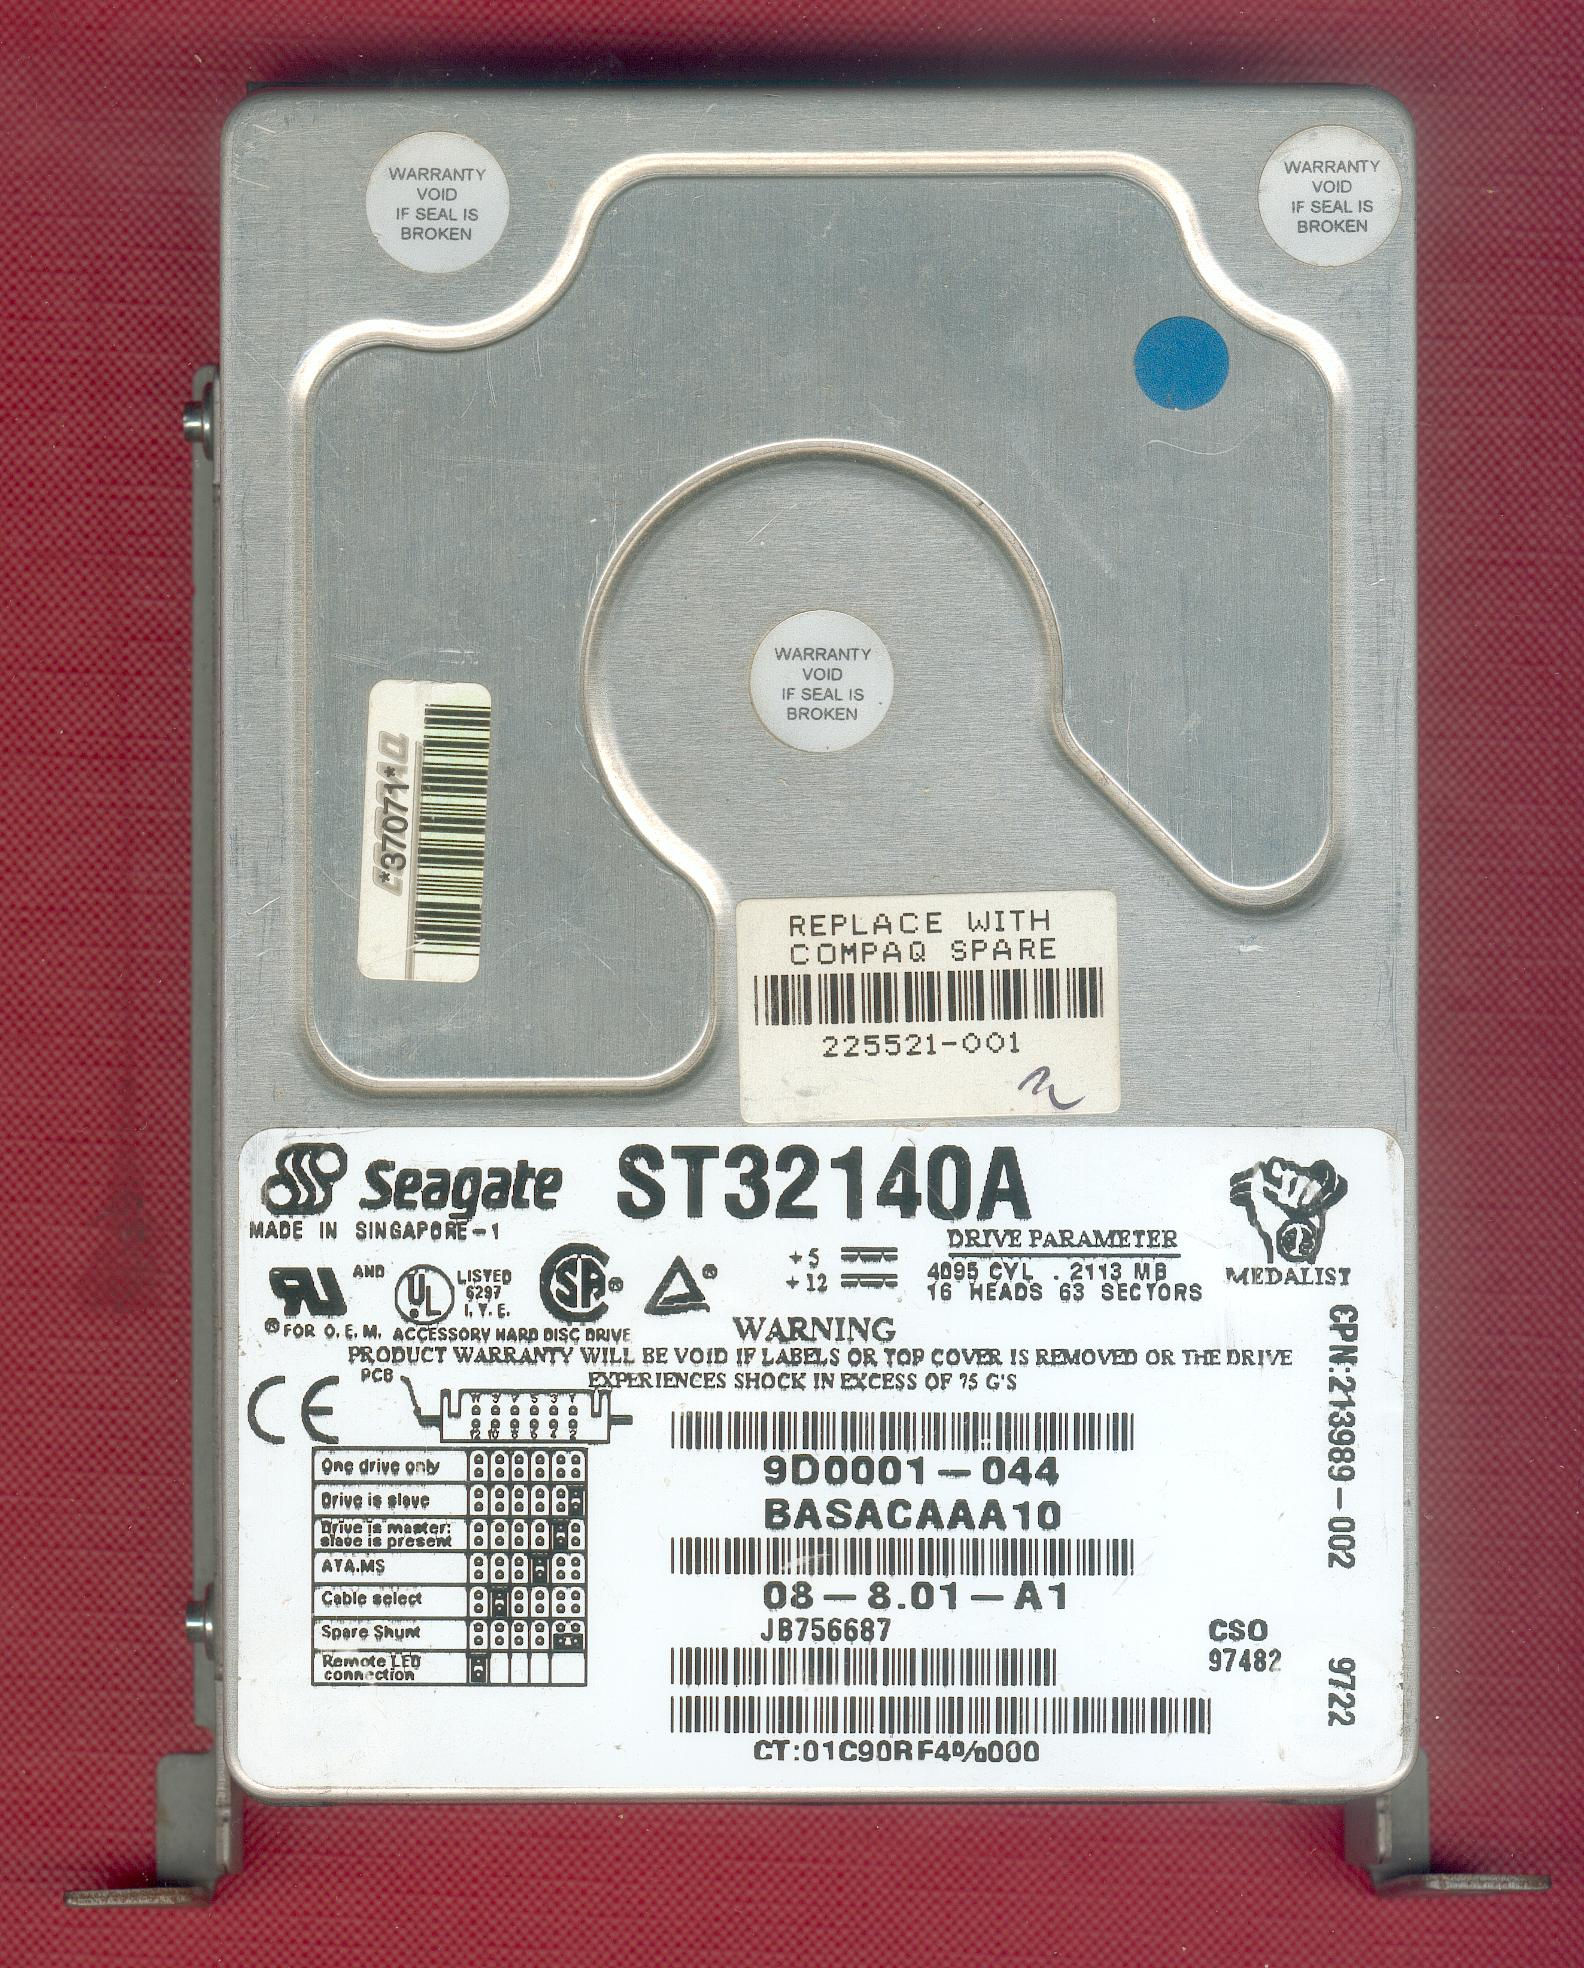 Seagate ST32140A hard disk unit - Replace with Compaq Spare